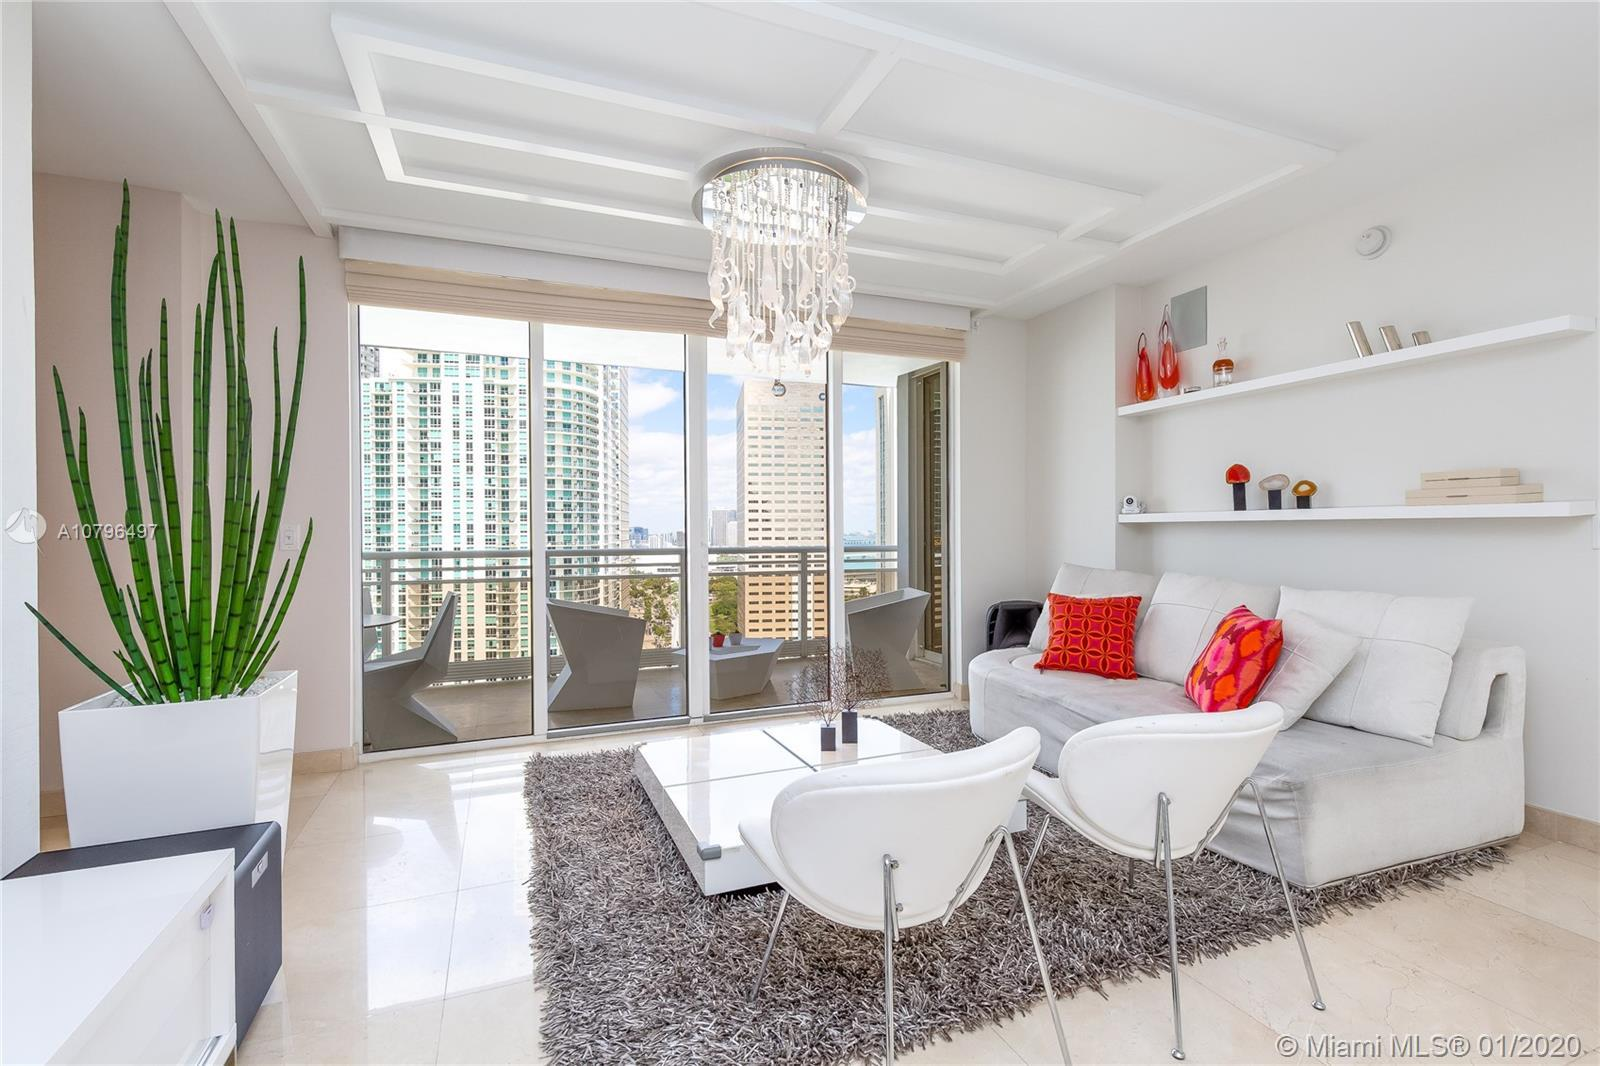 BRICKELL KEY IS AN EXCLUSIVE AND TRANQUIL OASIS, LOCATED JUST MINUTES TO THE HEART OF DOWNTOWN AND T